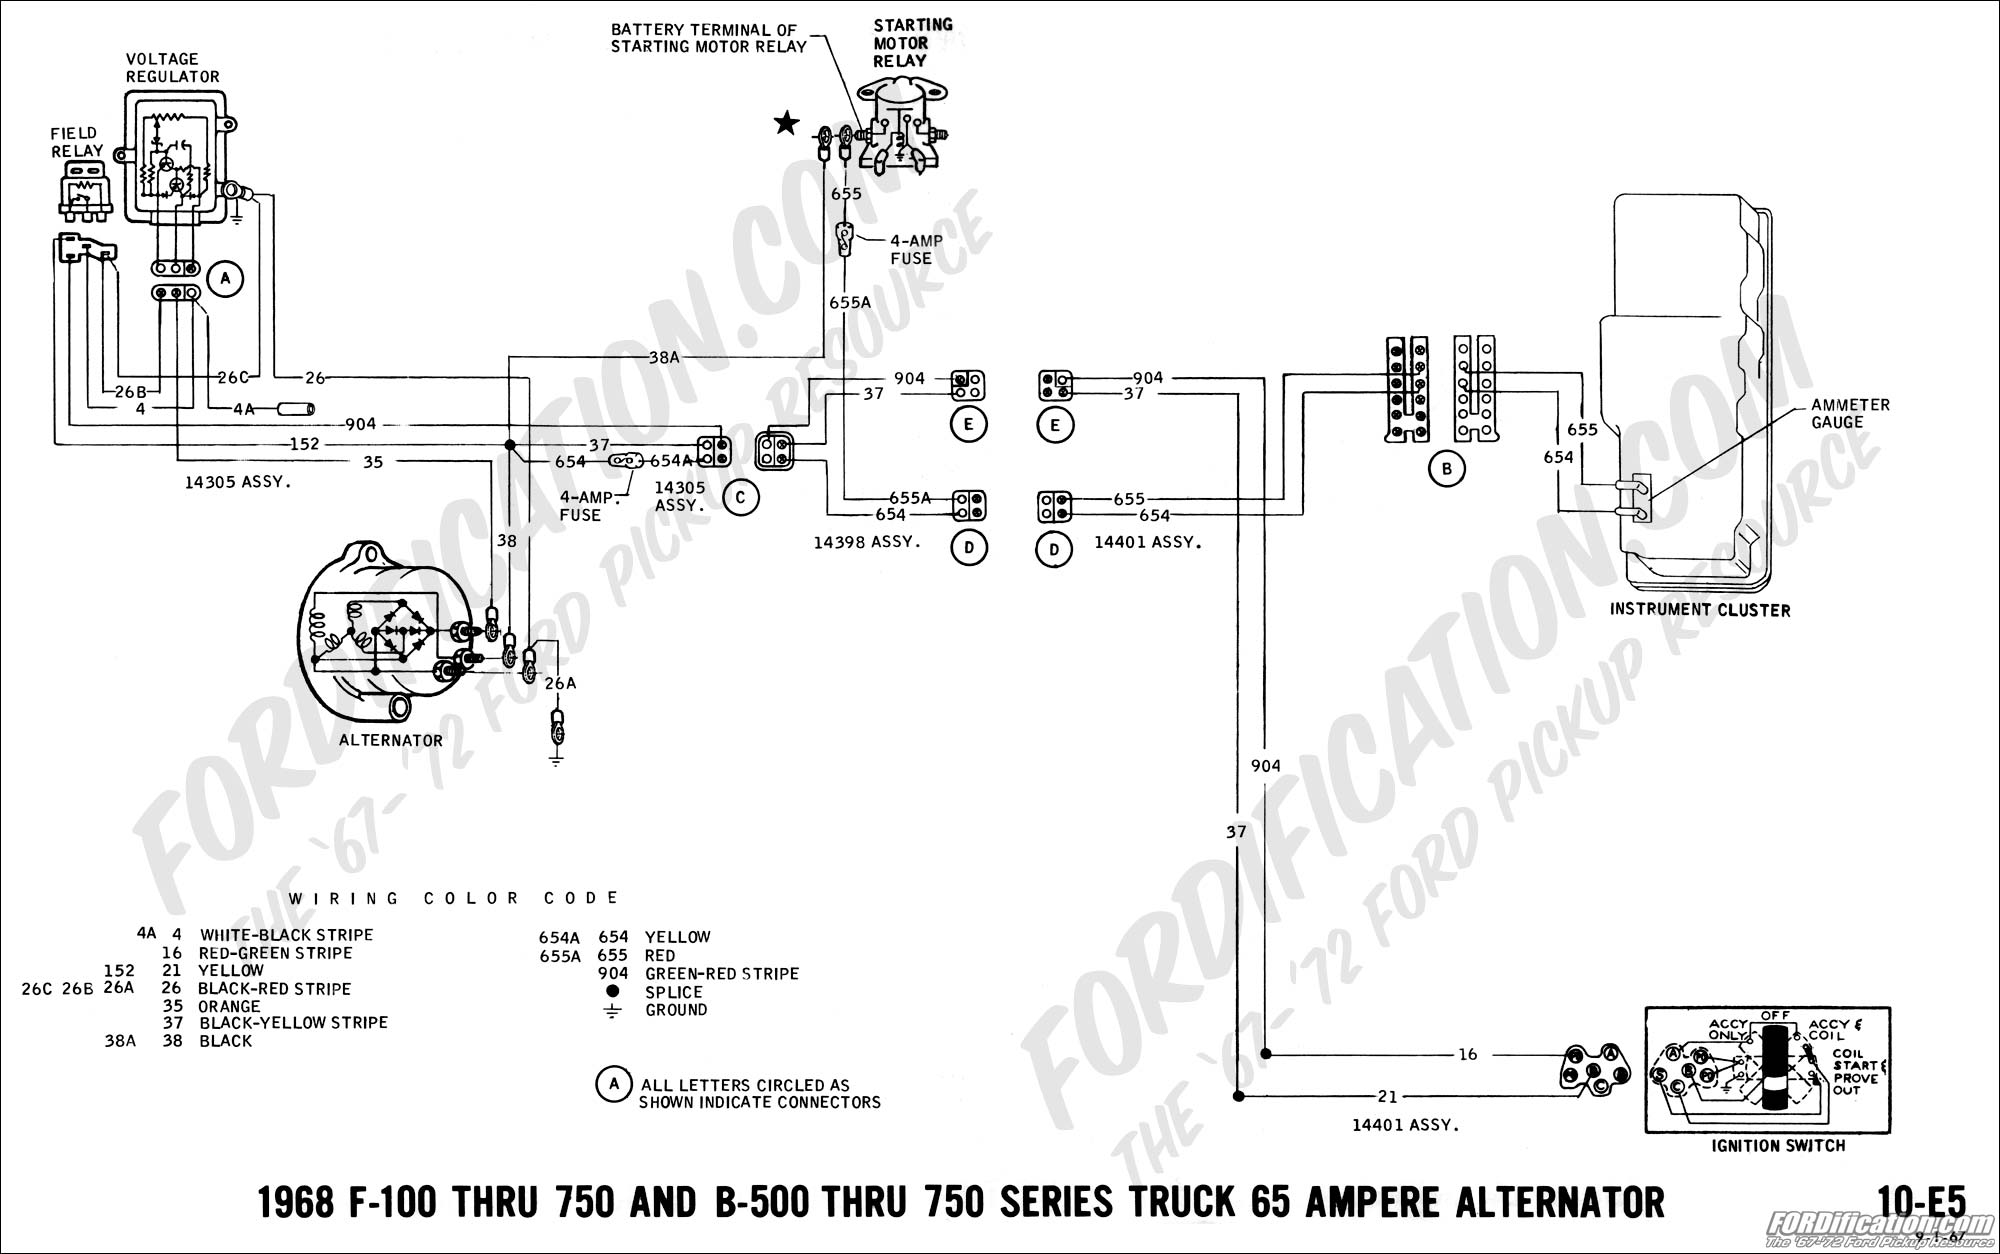 68 07 ford truck technical drawings and schematics section h wiring 1971 ford f250 wiring diagram at nearapp.co